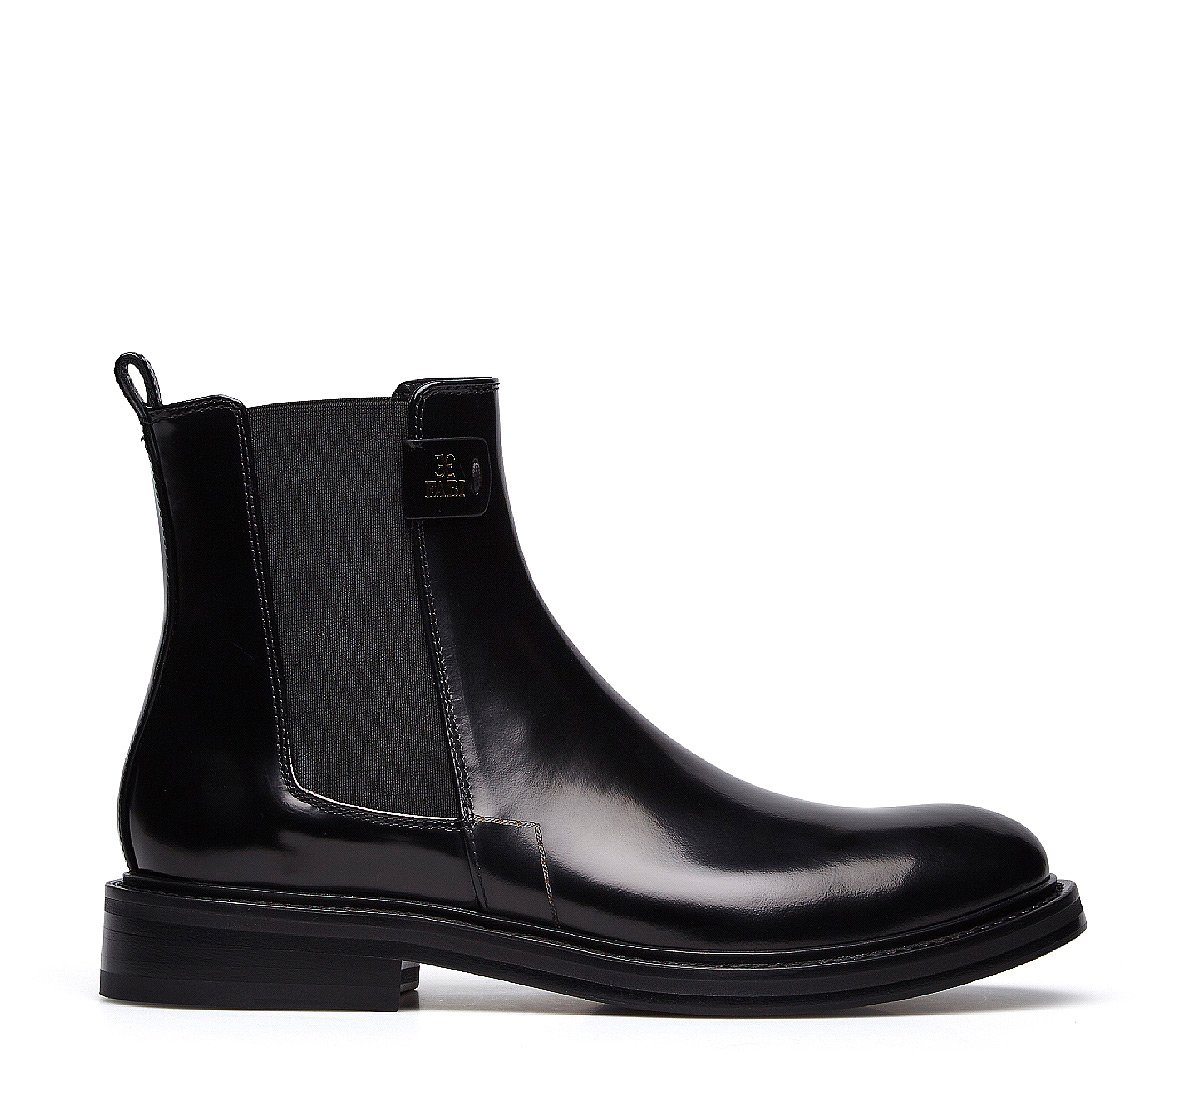 Classic Beatle boots in brushed calfskin